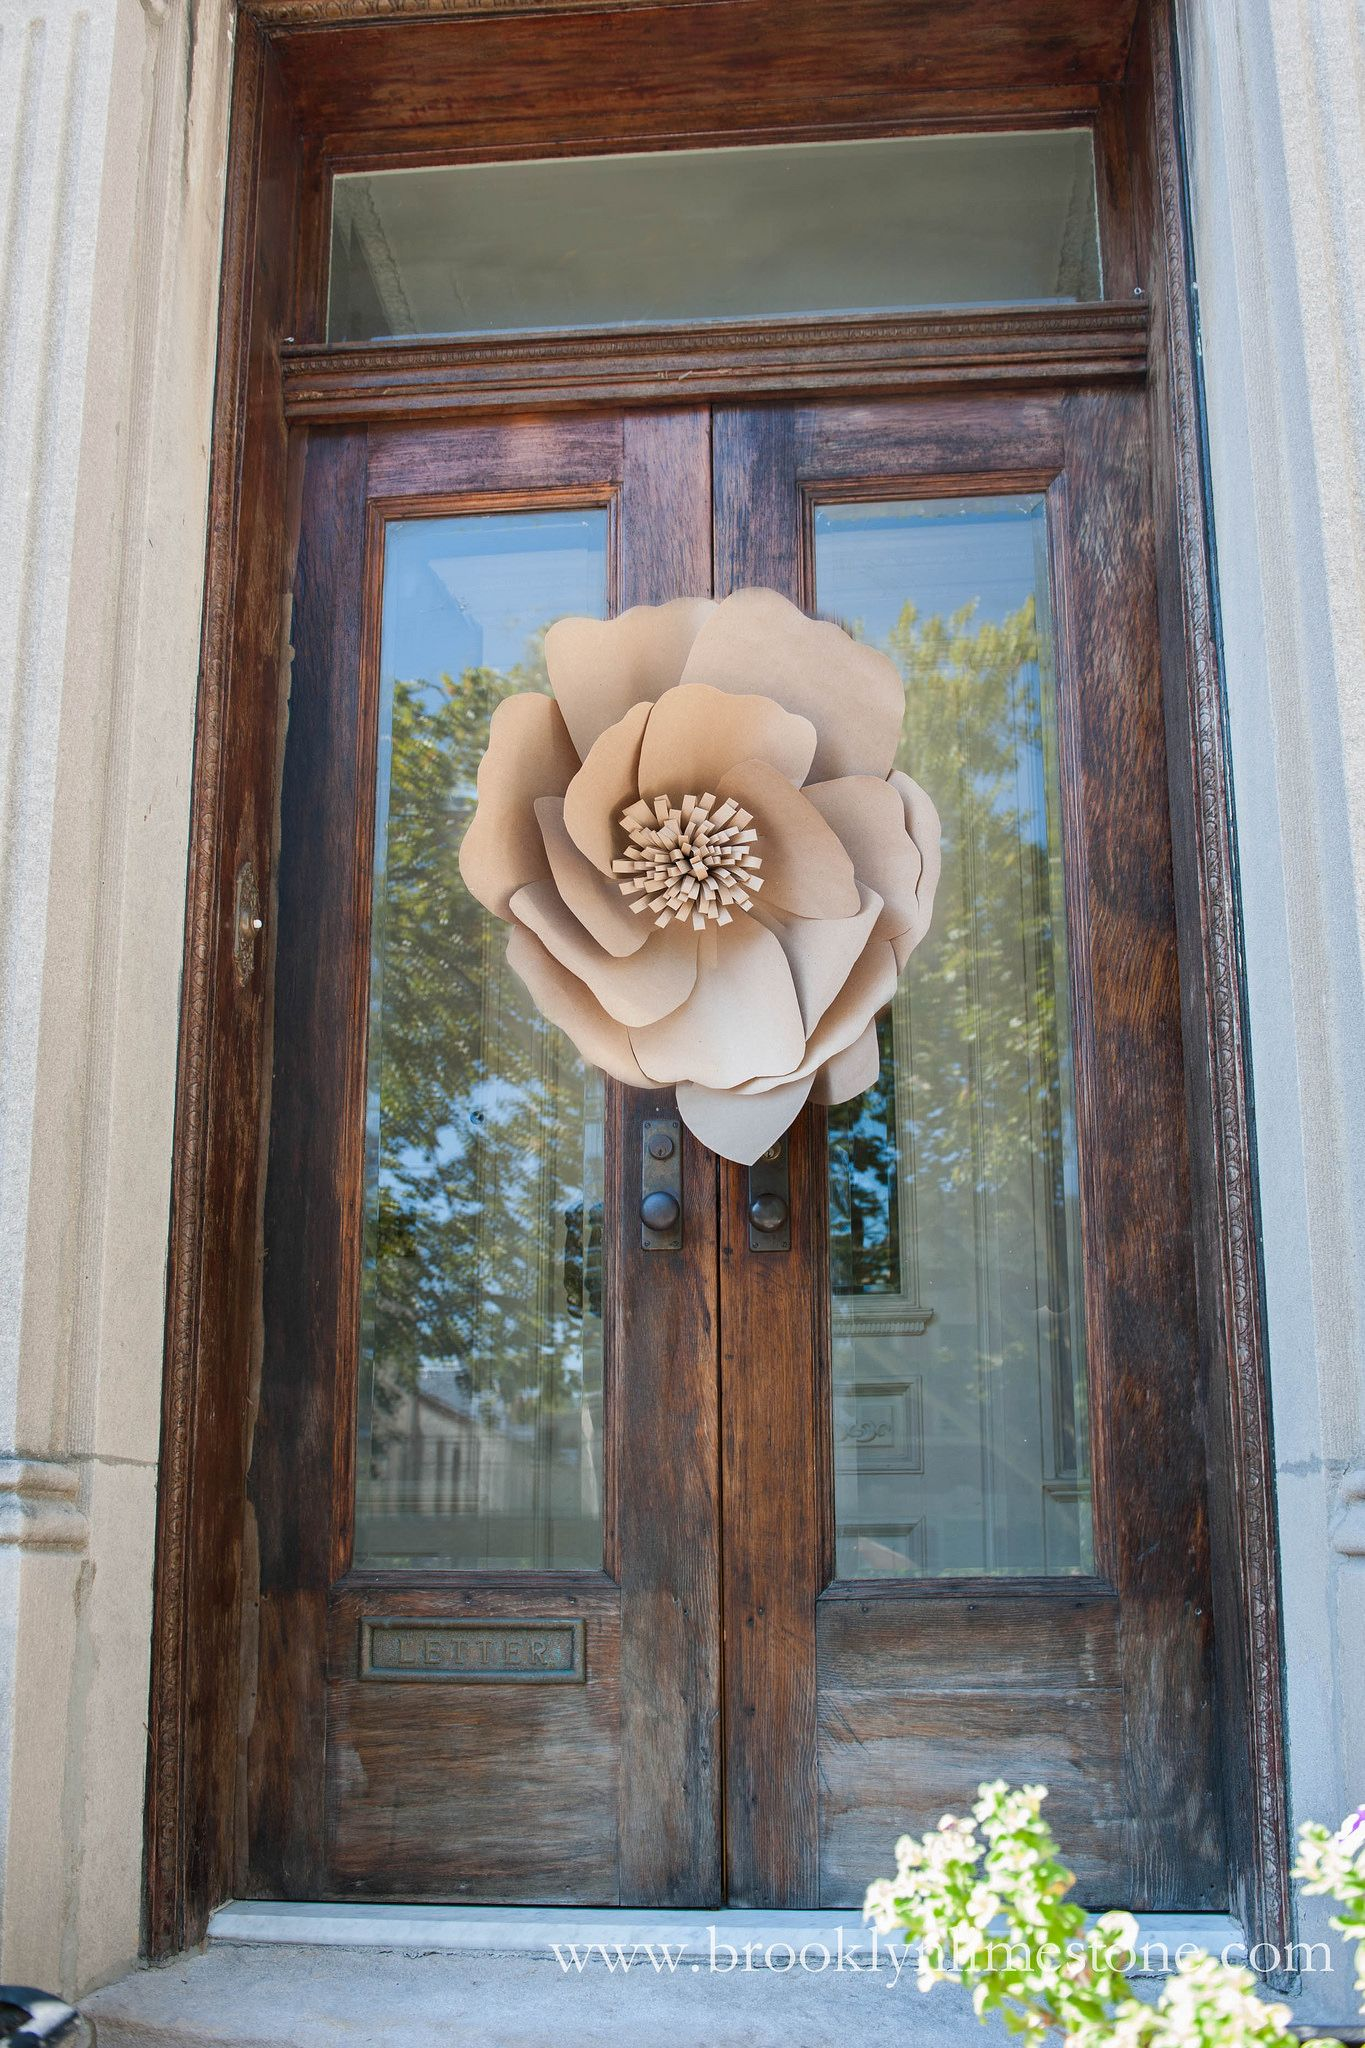 Httpsflicpovpcbm kraftpaperwreathwmwww find this pin and more on fabric and paper flowers dhlflorist Images